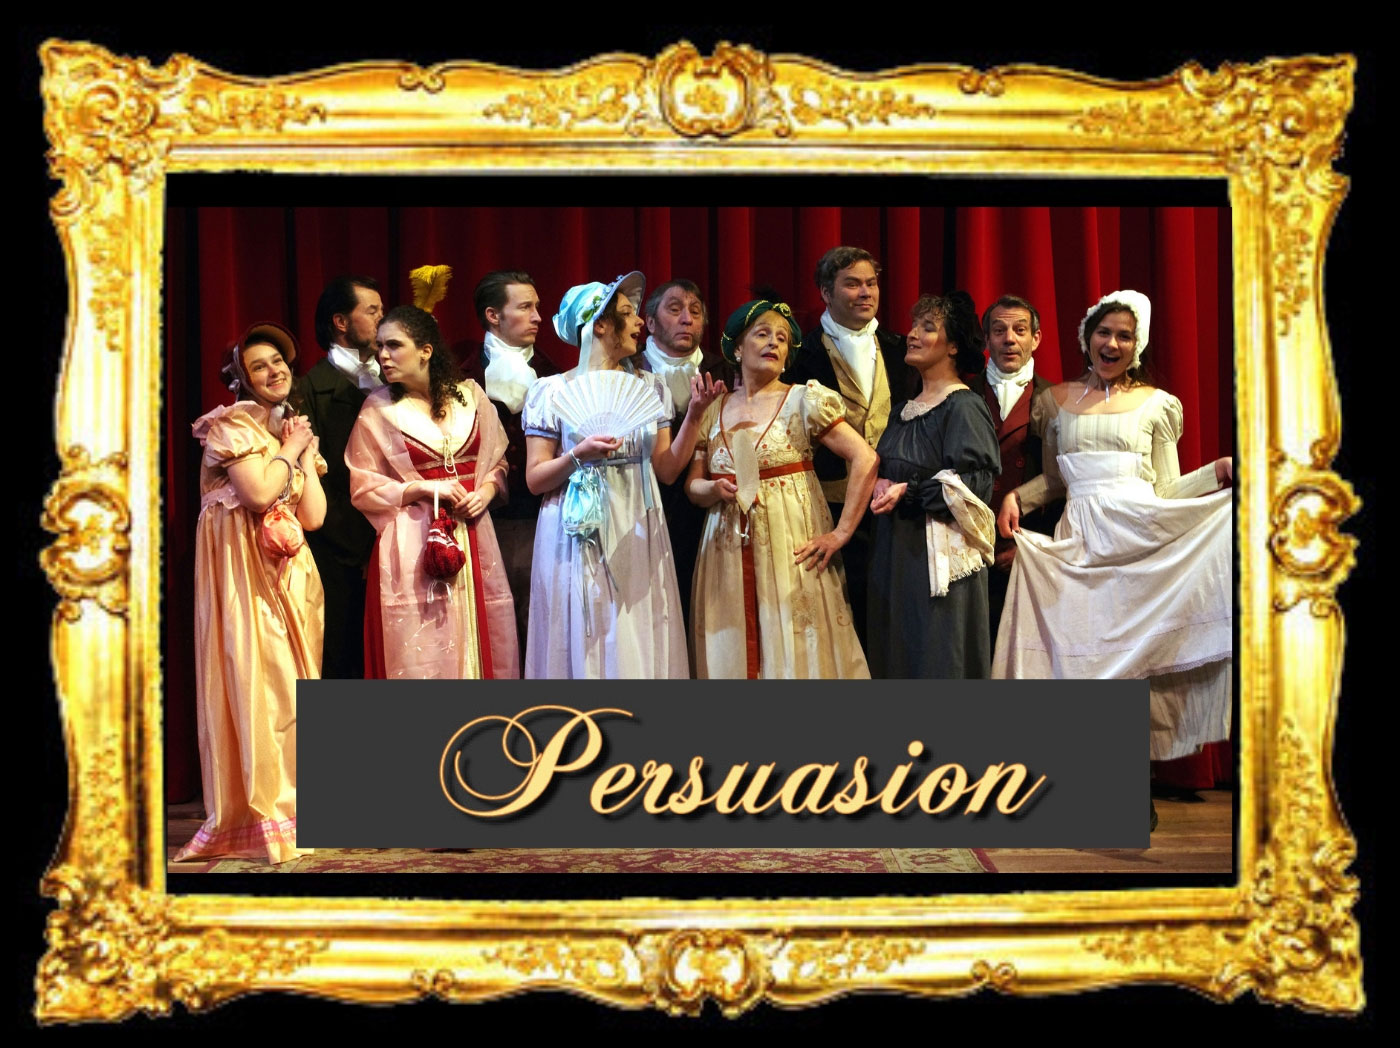 FRamed Cast Photo of Persuasion